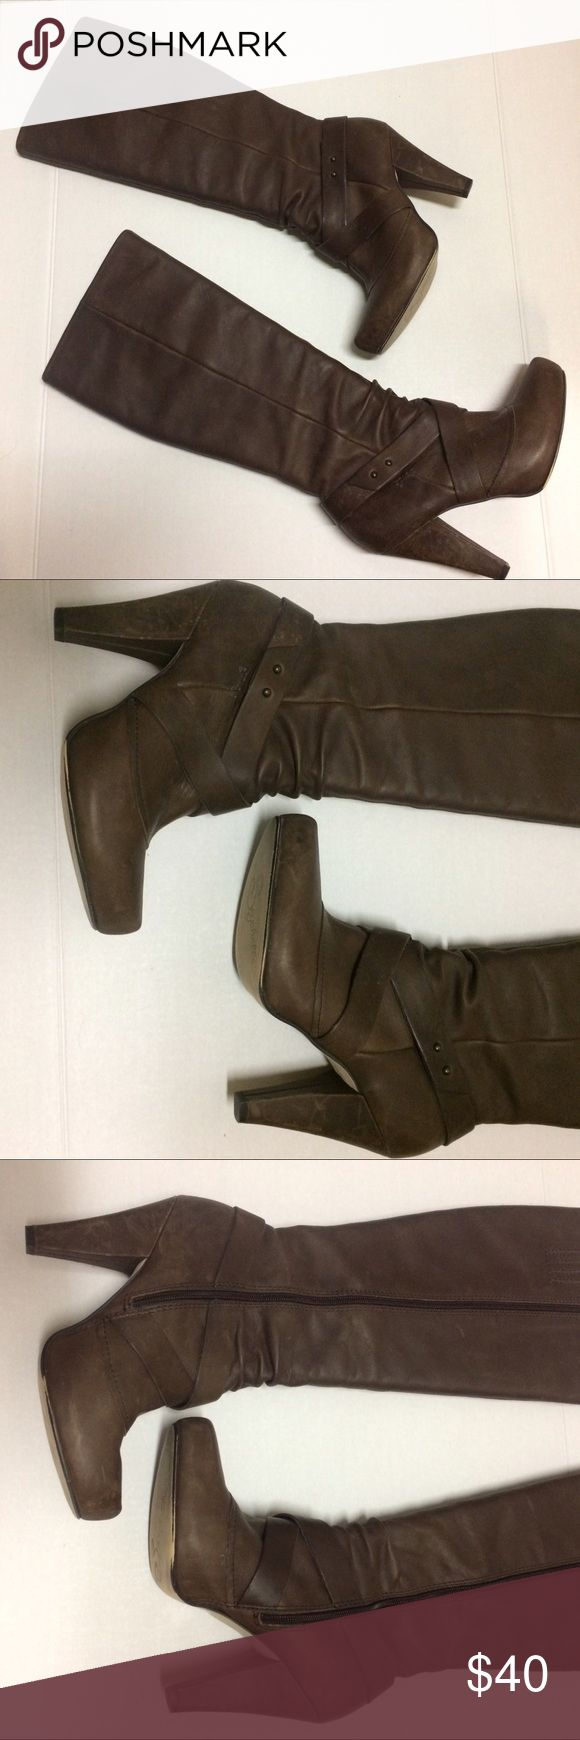 """Seychelles Brown Leather Boots, Size 9 Seychelles Brown Leather Boots with platform in Size 9. Total height is 19.5"""", 7.25"""" wide across top, heel is 4"""". Heels show some wear (see pictures) but boots have a distressed look. Bought new but only worn a few times. Seychelles Shoes Heeled Boots"""